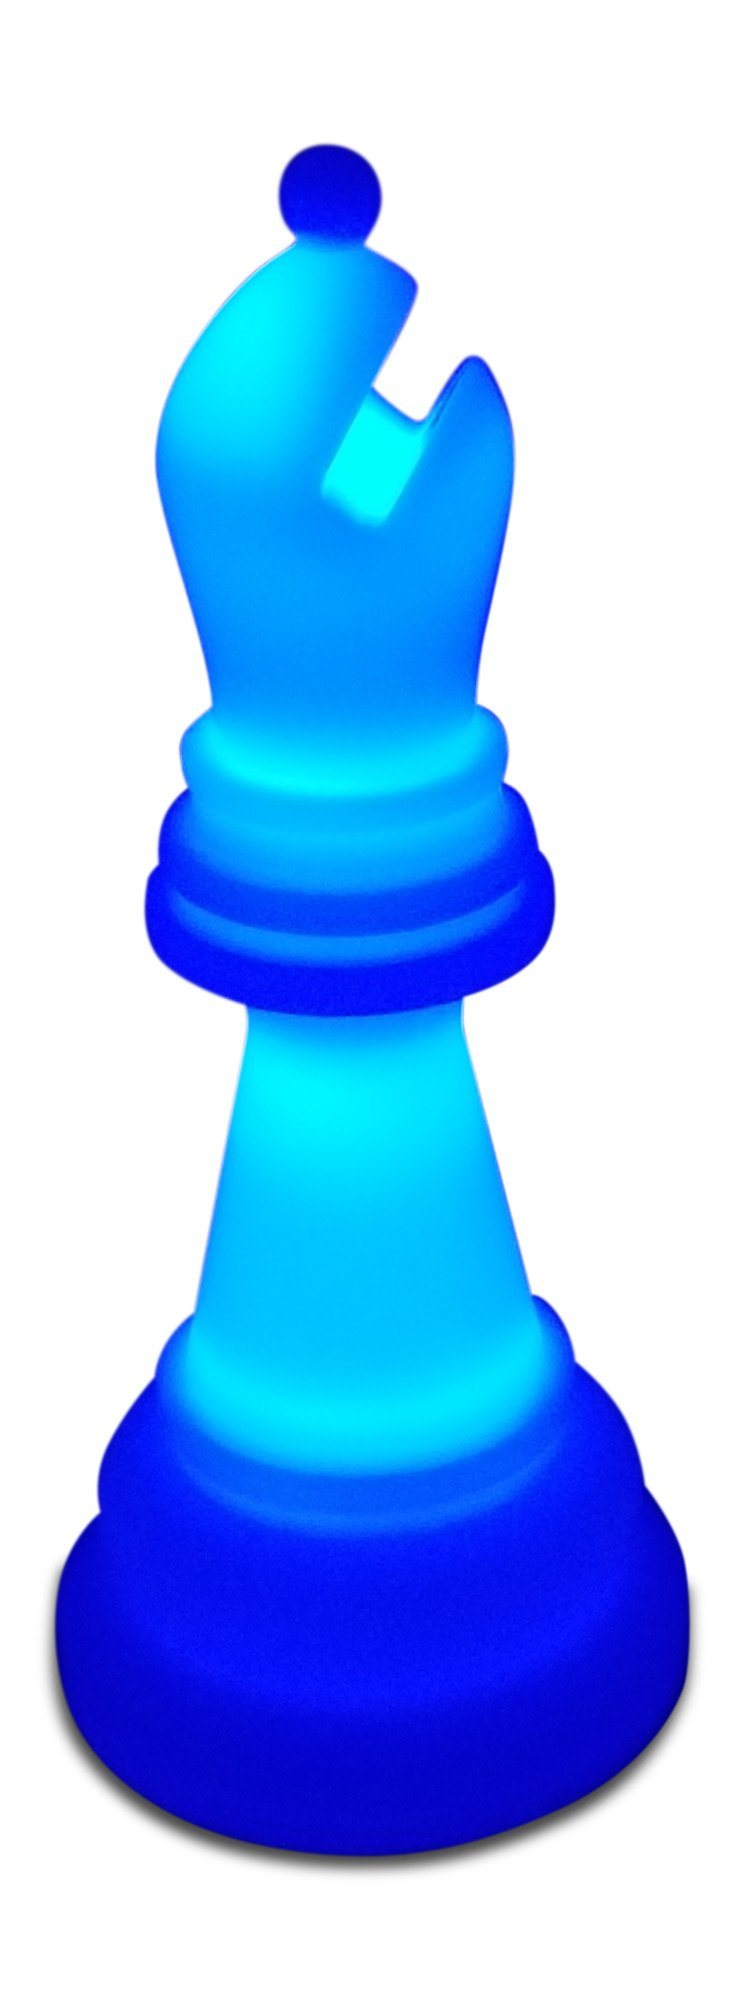 MegaChess 28 Inch Premium Plastic Bishop Light-Up Giant Chess Piece - Blue | Default Title | GiantChessUSA